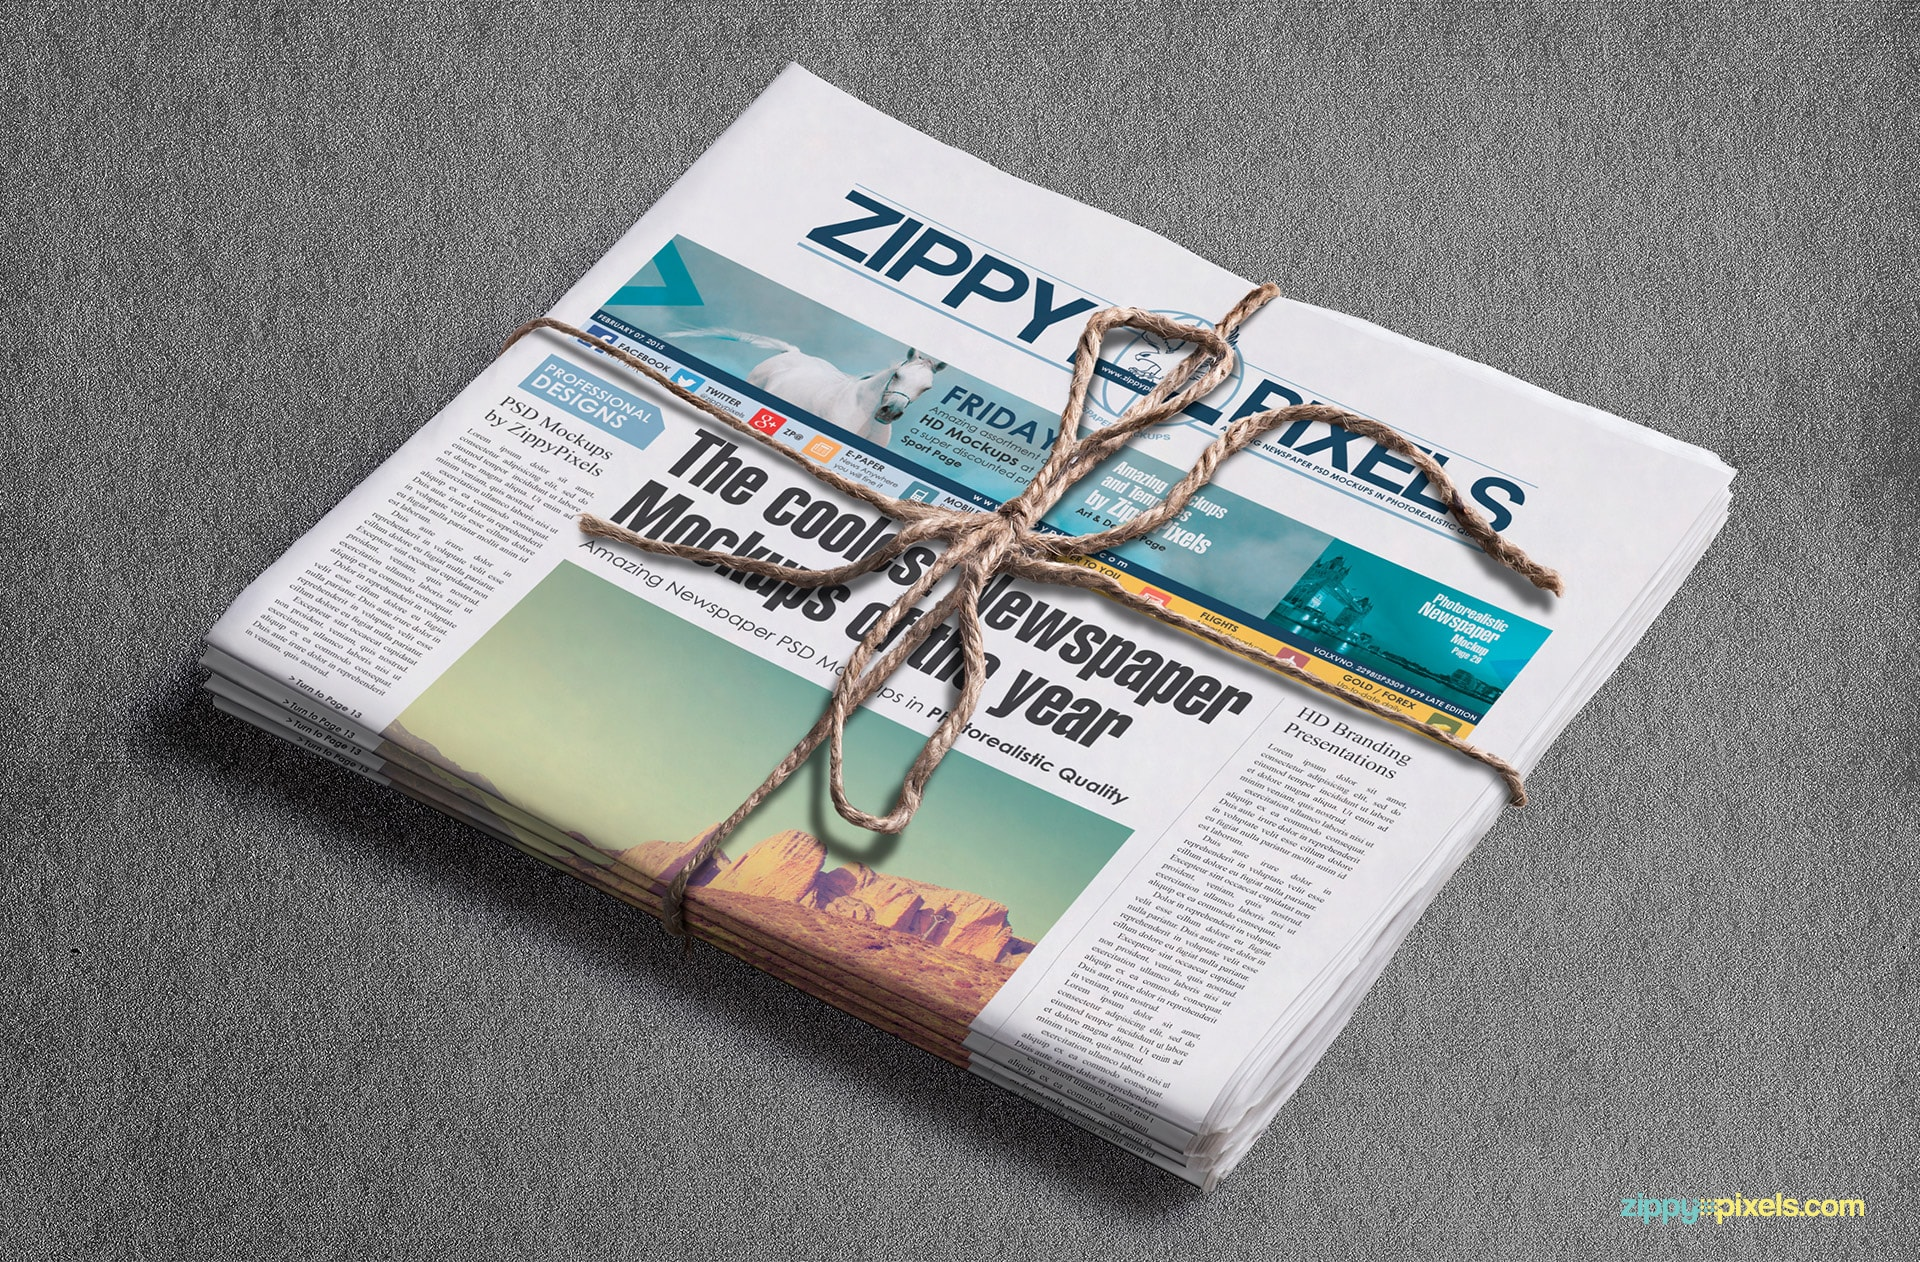 Newspaper mockups showing bundle of newspaper with banner ad with customizable background